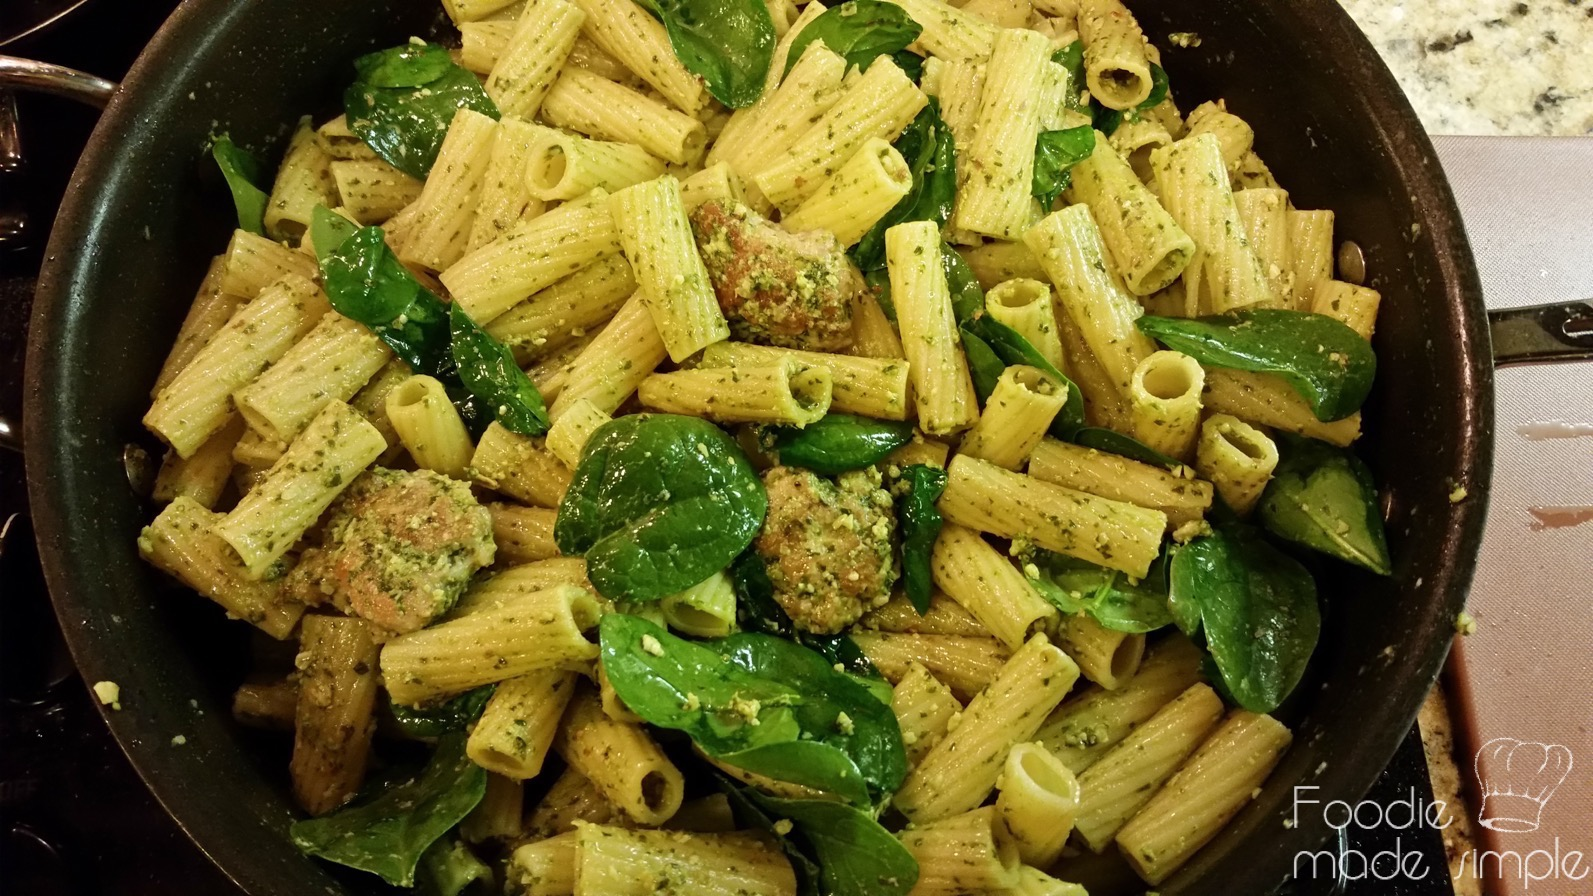 plate the pasta mixture and top with parmesan almonds and drizzle with ...